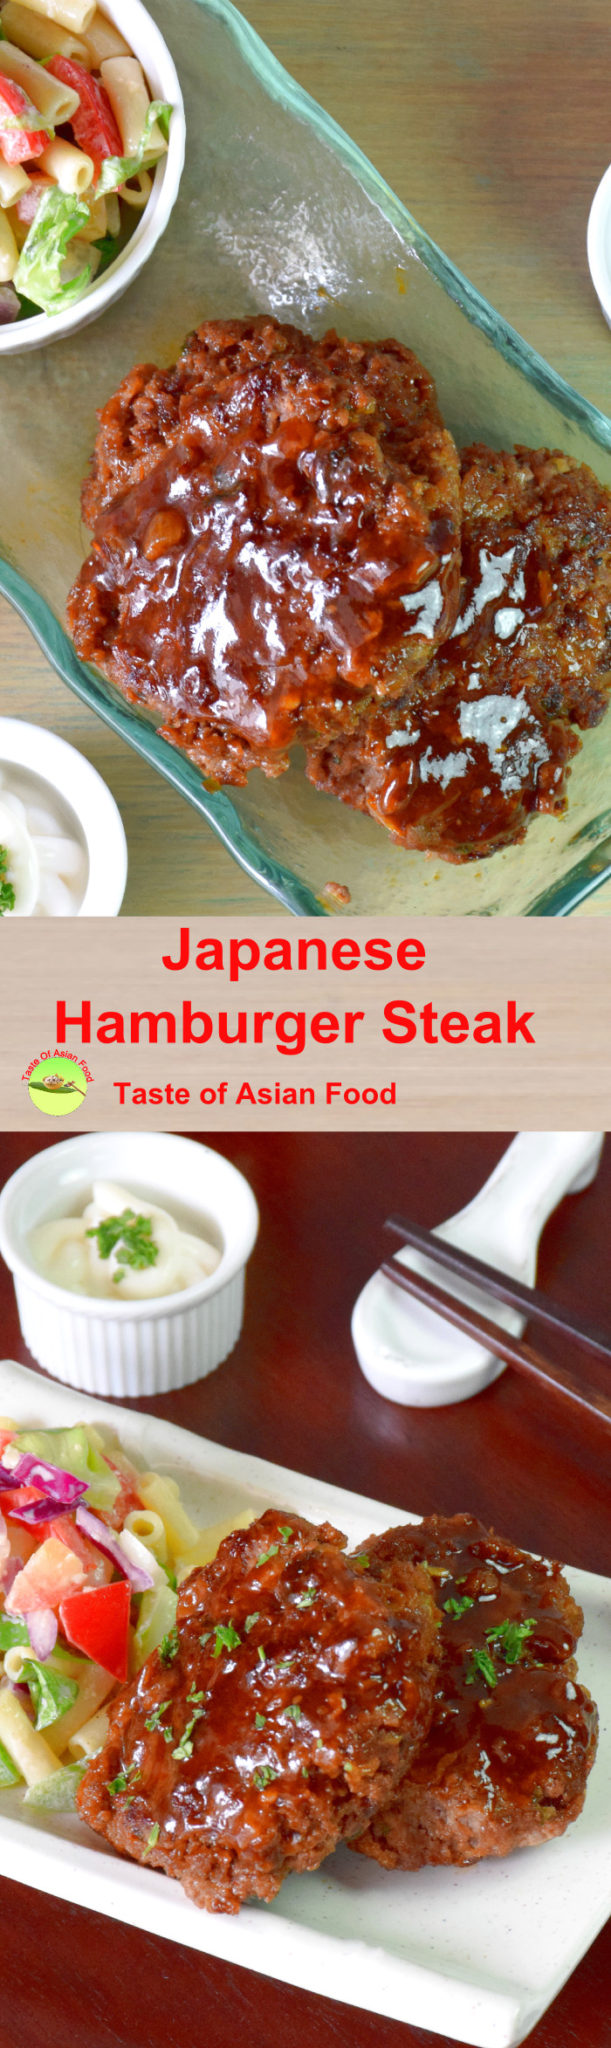 Hamburger steak pin